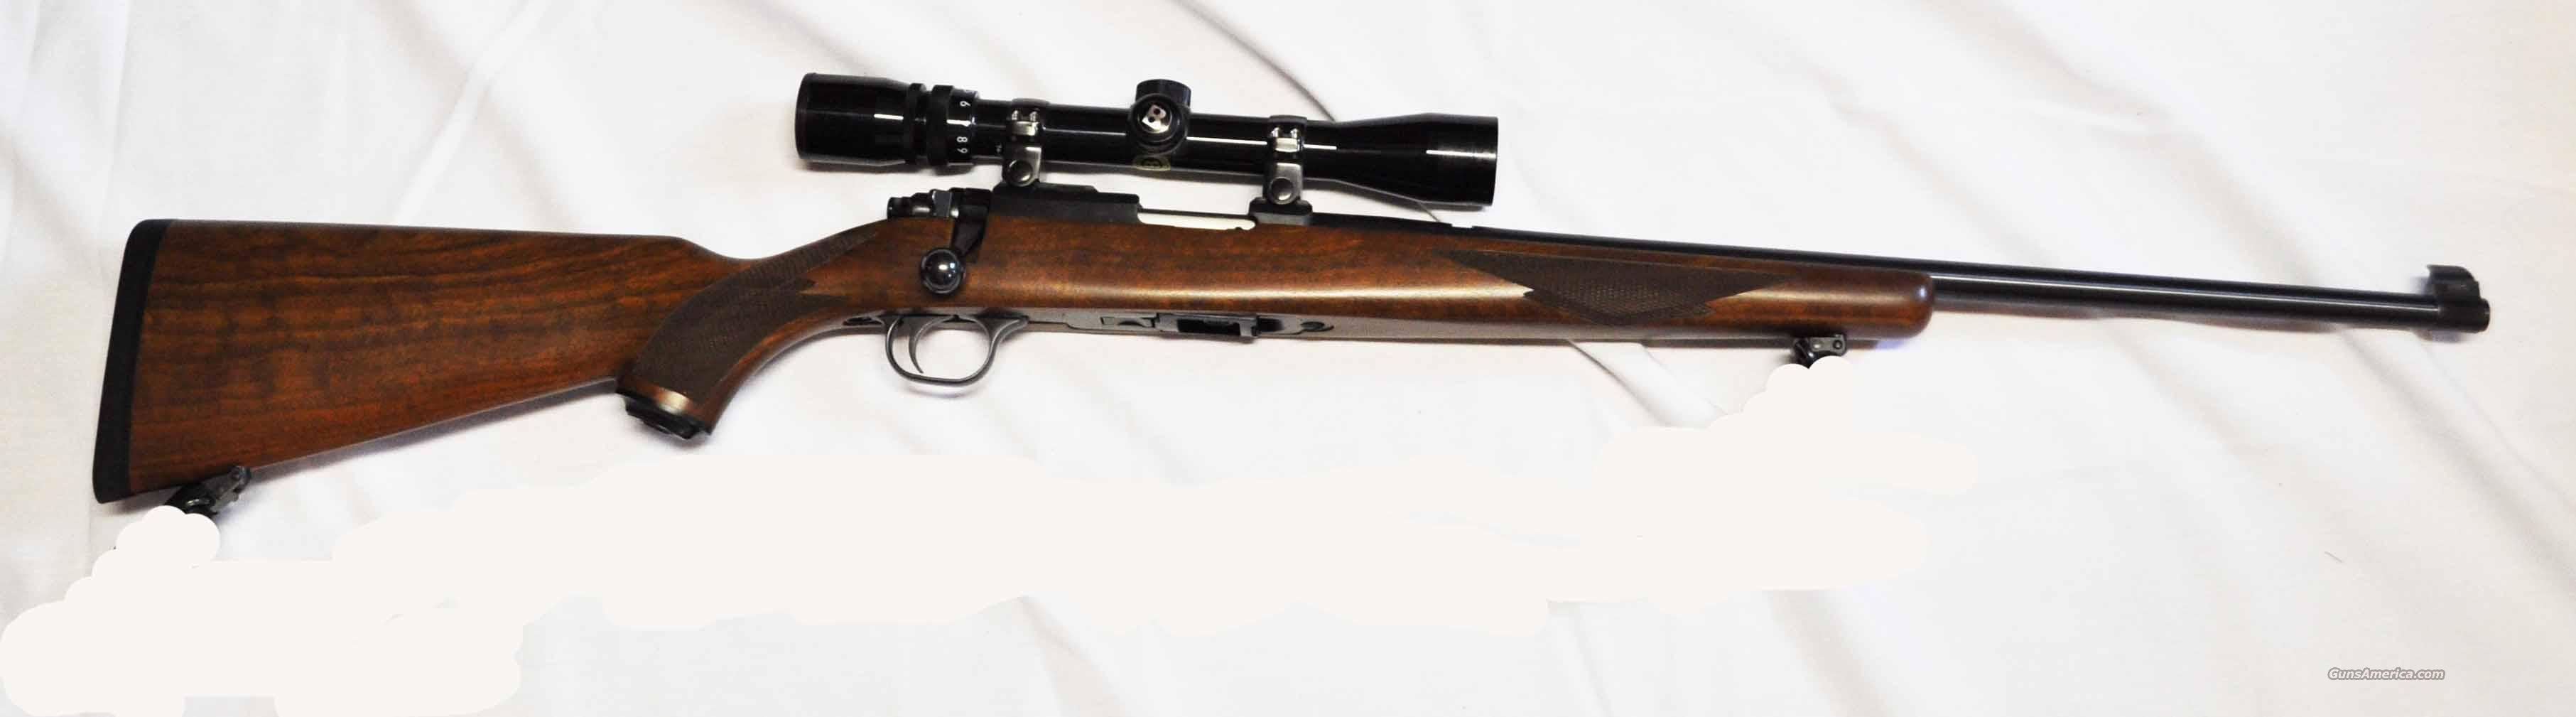 Ruger 77-22 Bolt Action 22 LR  Guns > Rifles > Ruger Rifles > Model 77